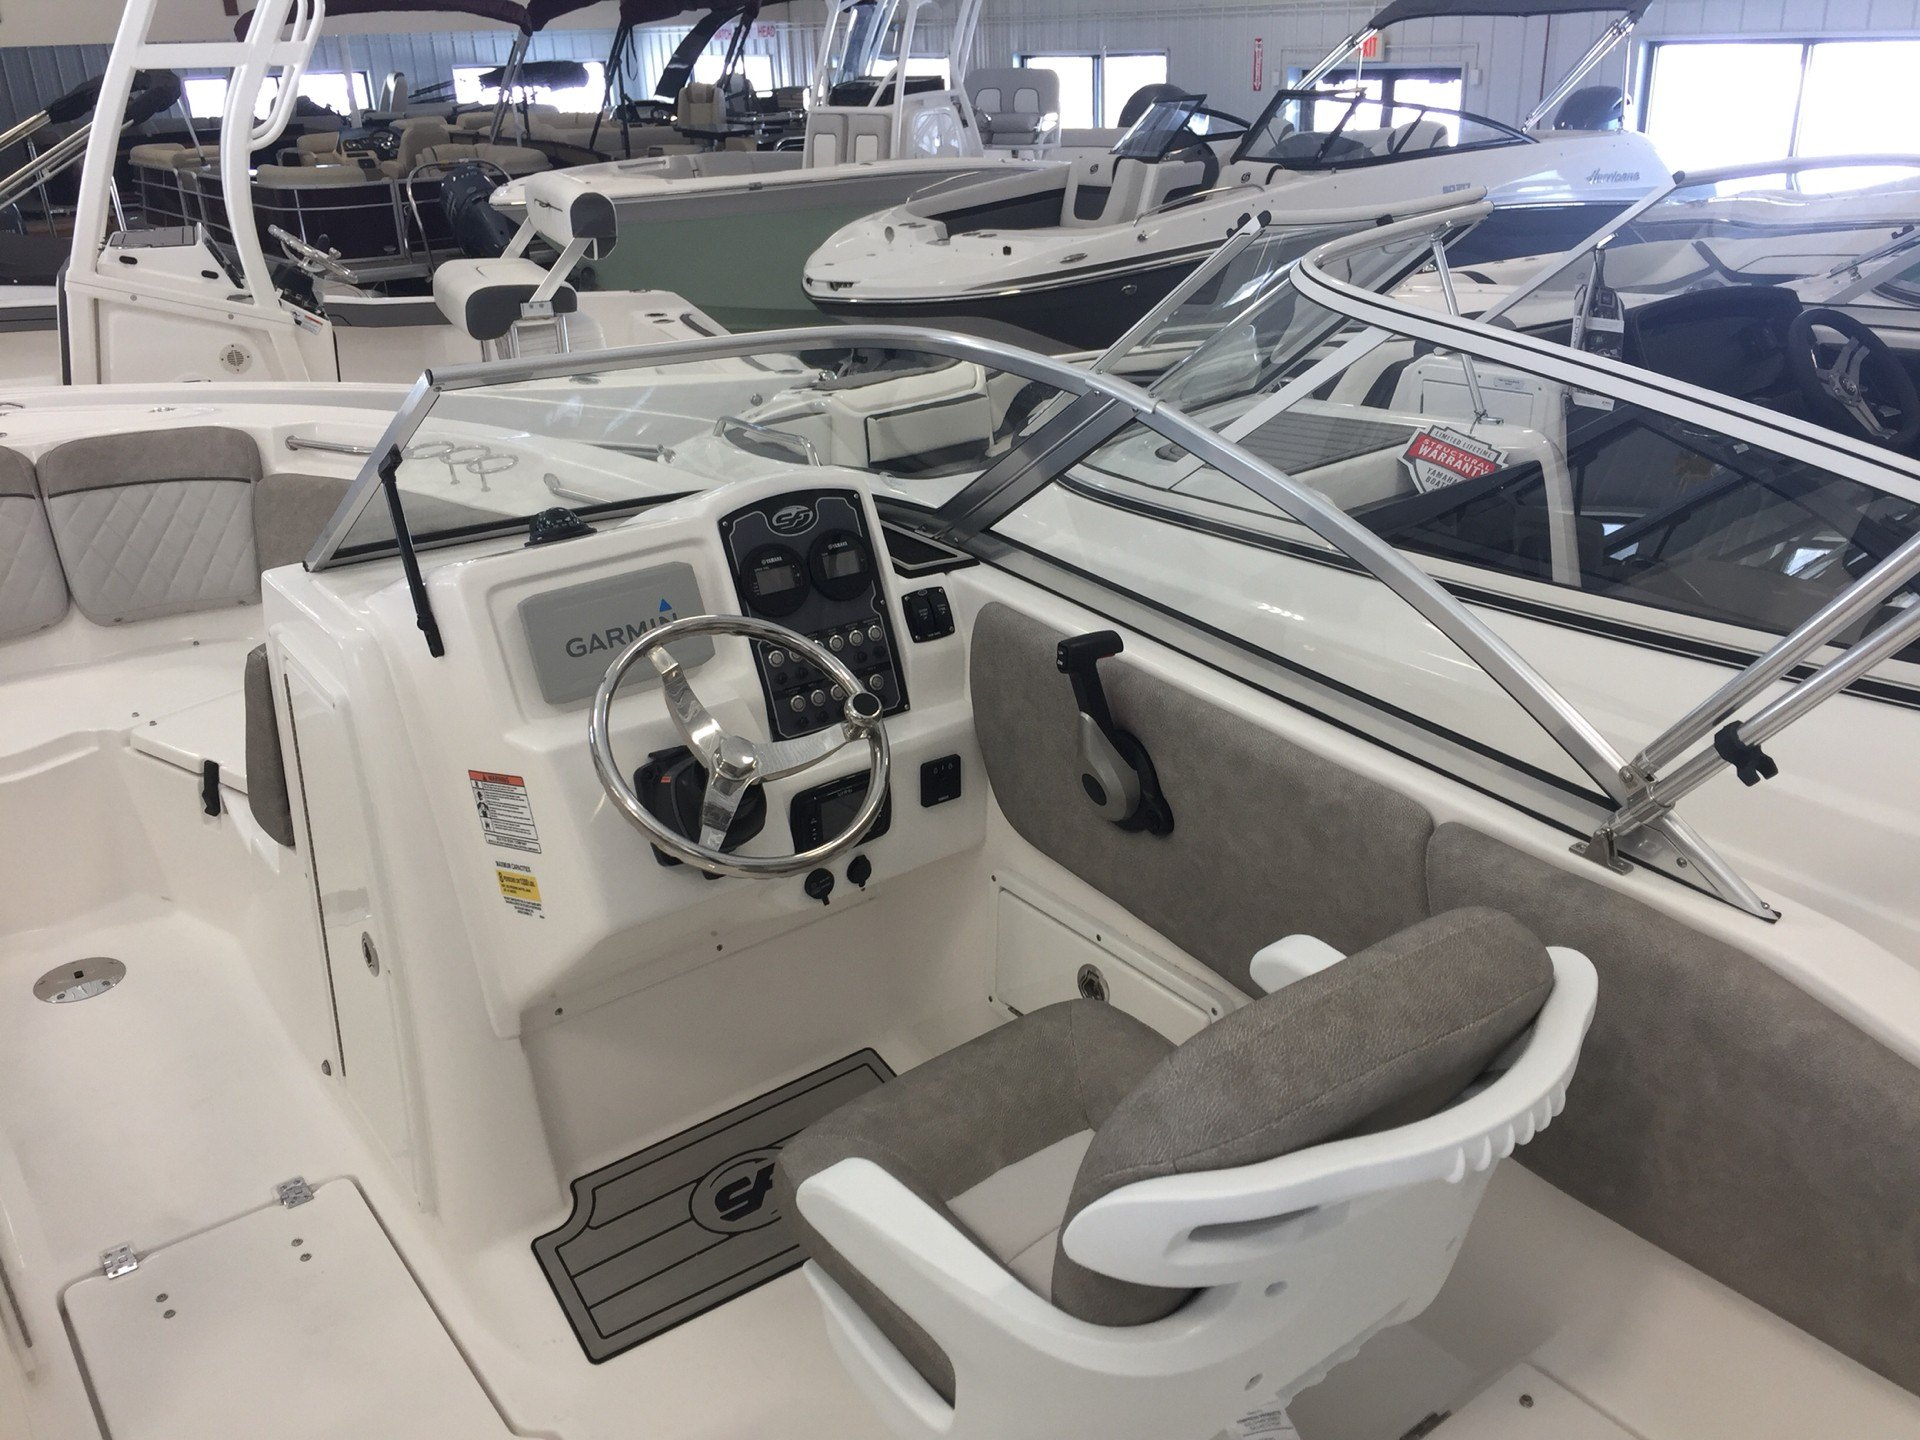 2019 Sea Fox 226 Traveler in Bridgeport, New York